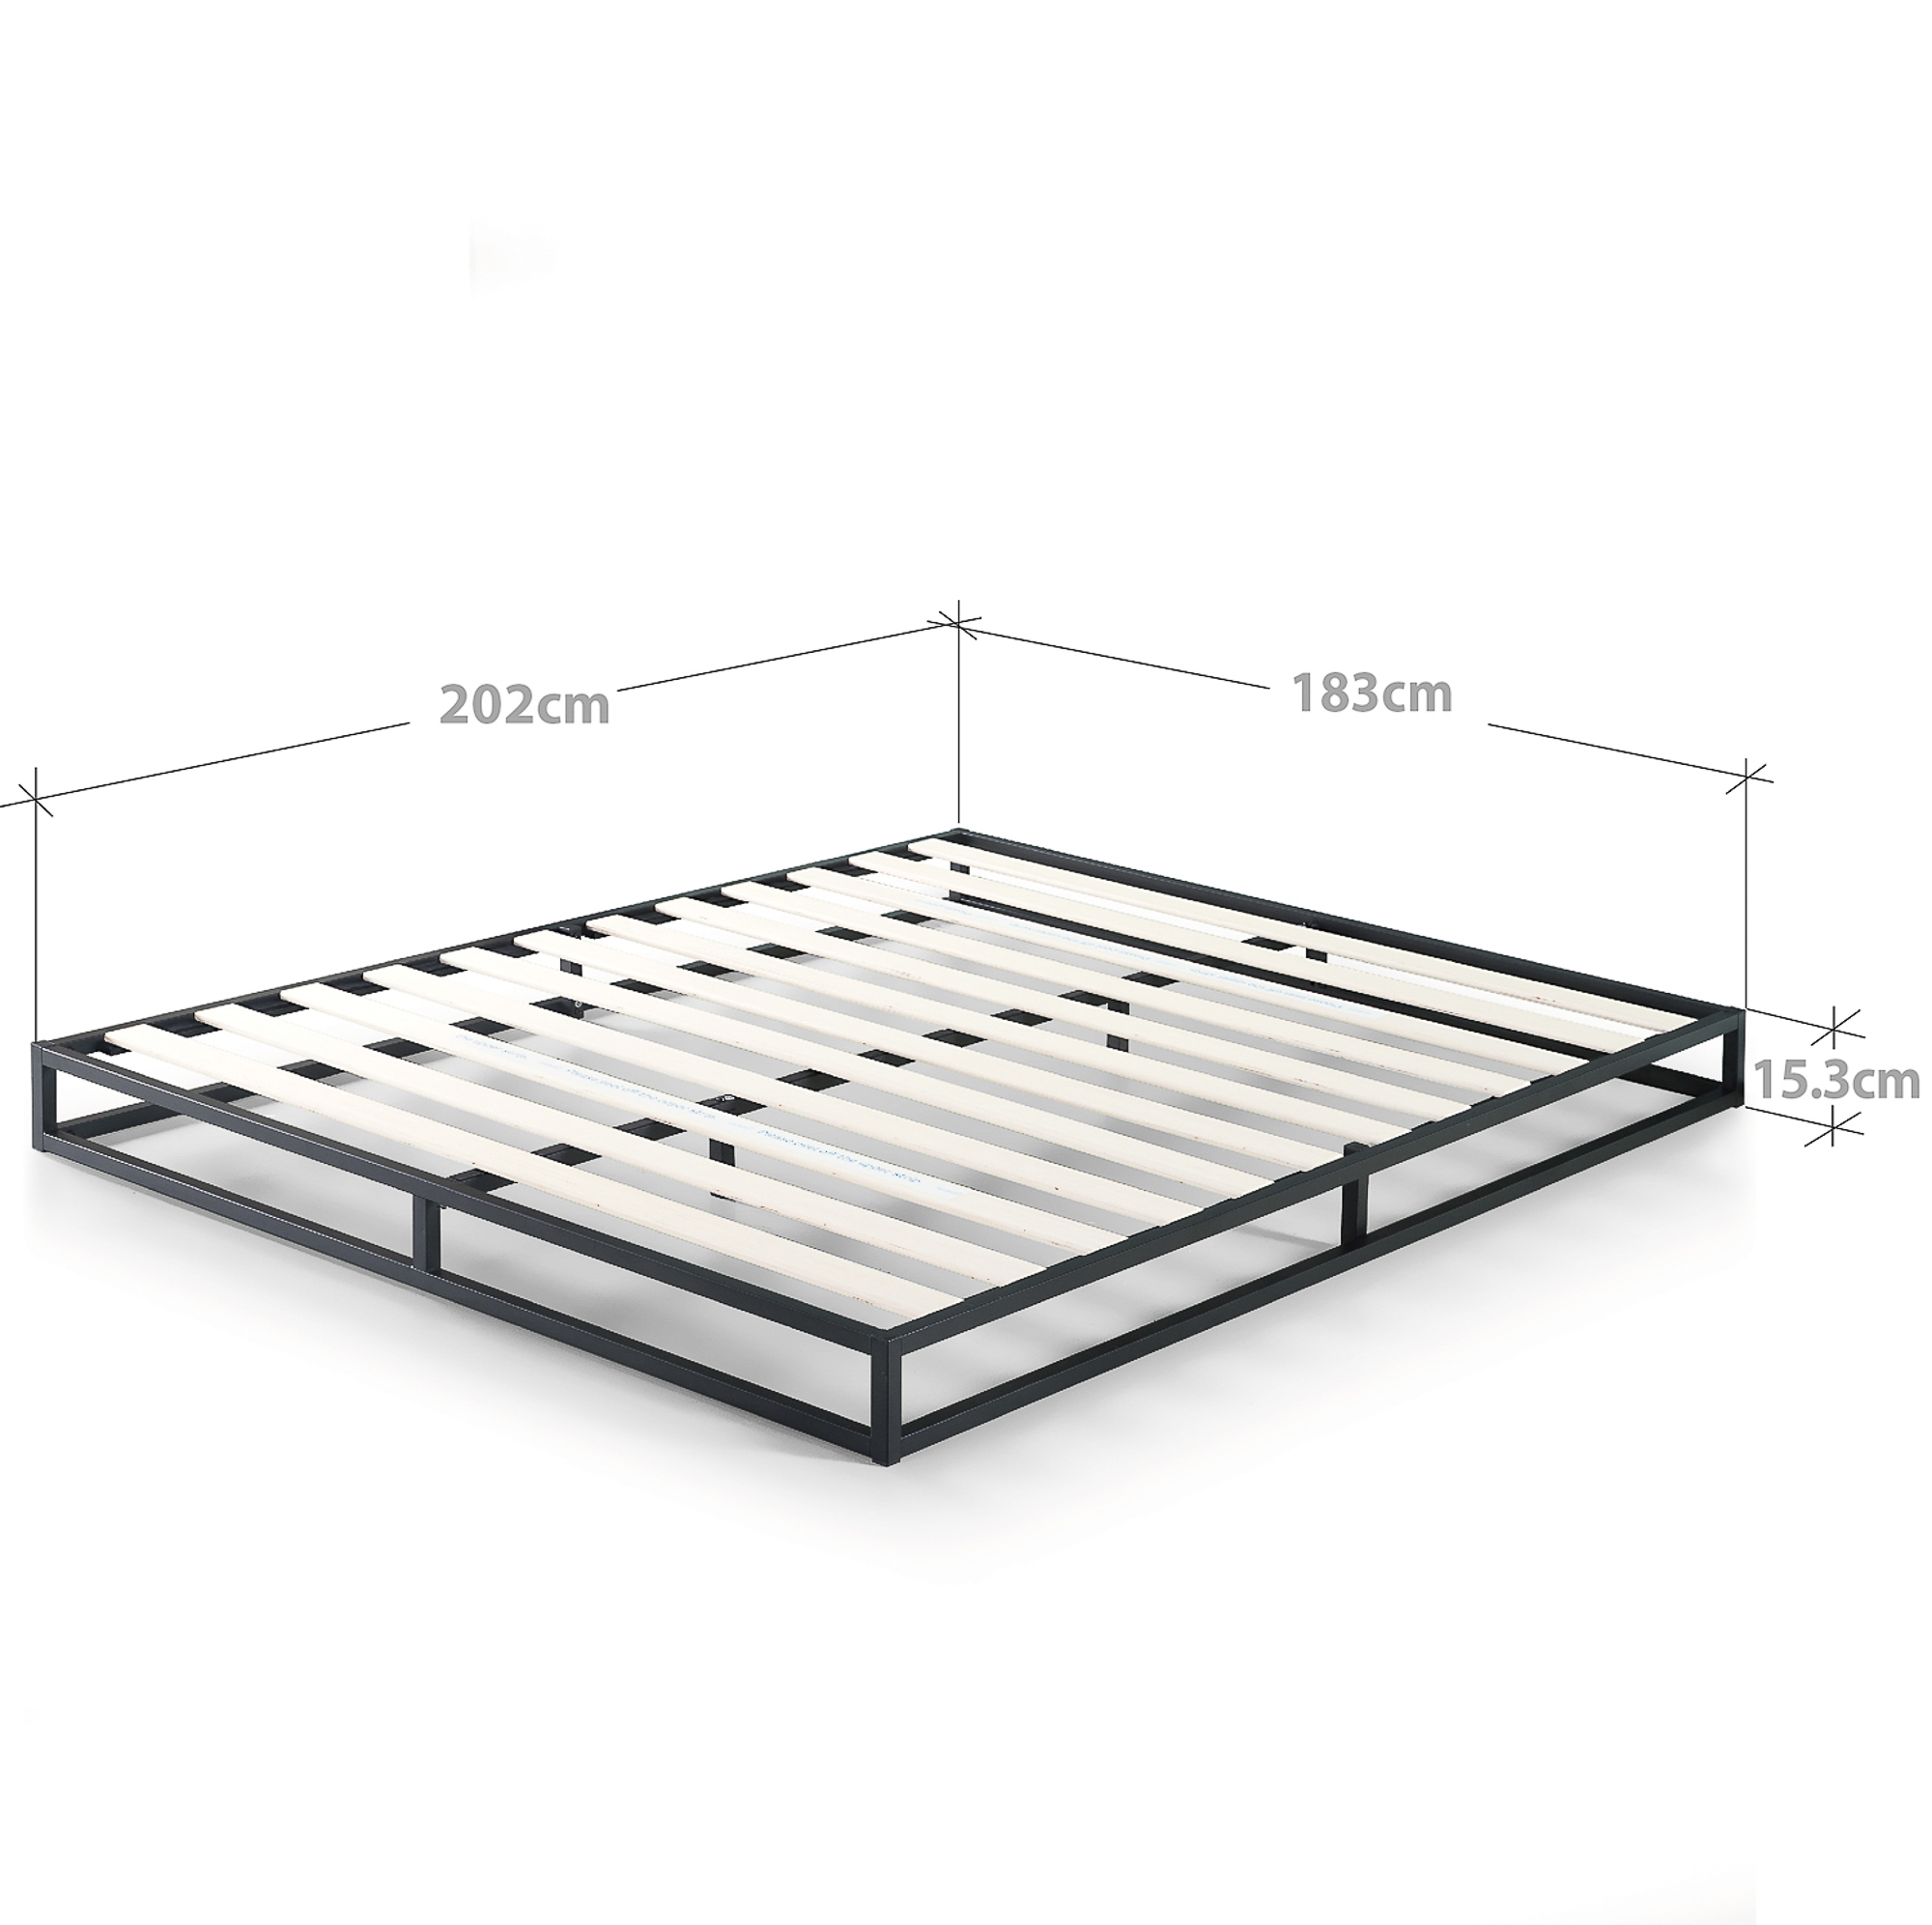 Zinus-Joesph-SINGLE-DOUBLE-QUEEN-KING-Metal-Low-Bed-Base-Mattress-Frame-Timber thumbnail 33